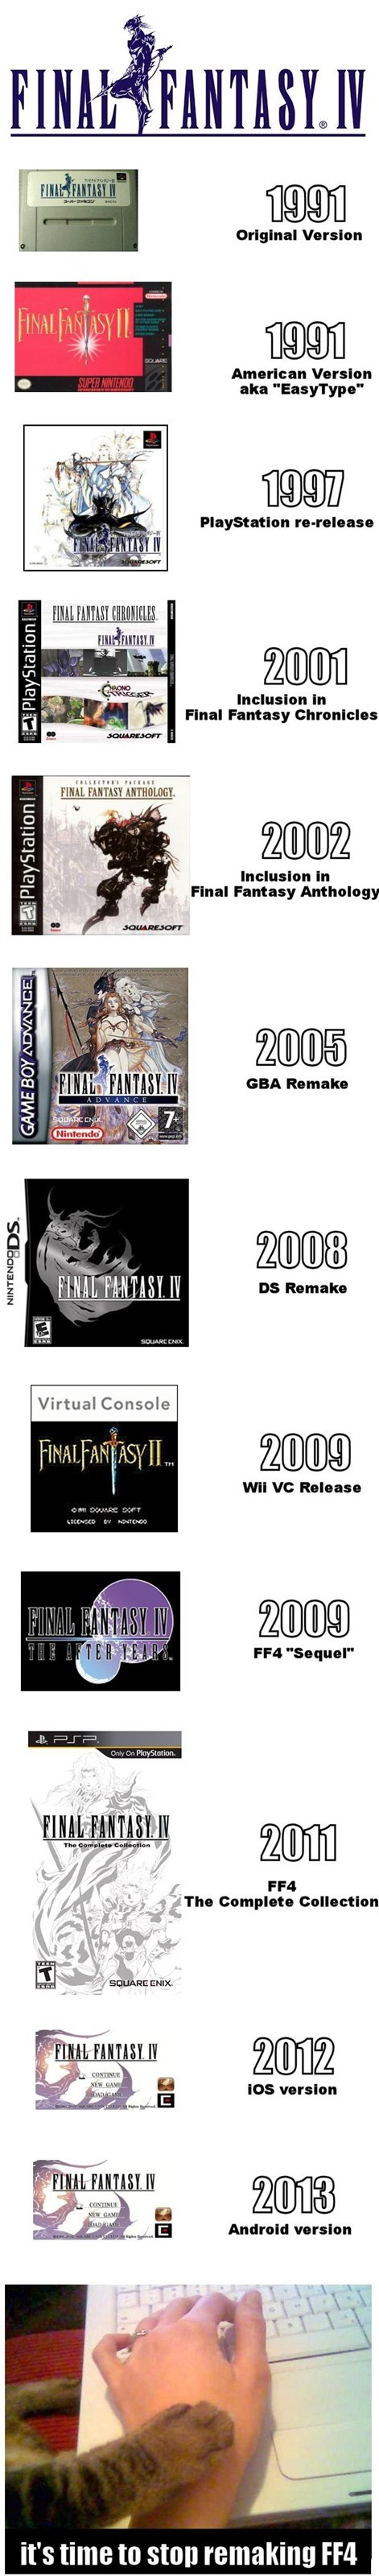 final fantasy stahp square enix Final Fantasy IV - 7643401216